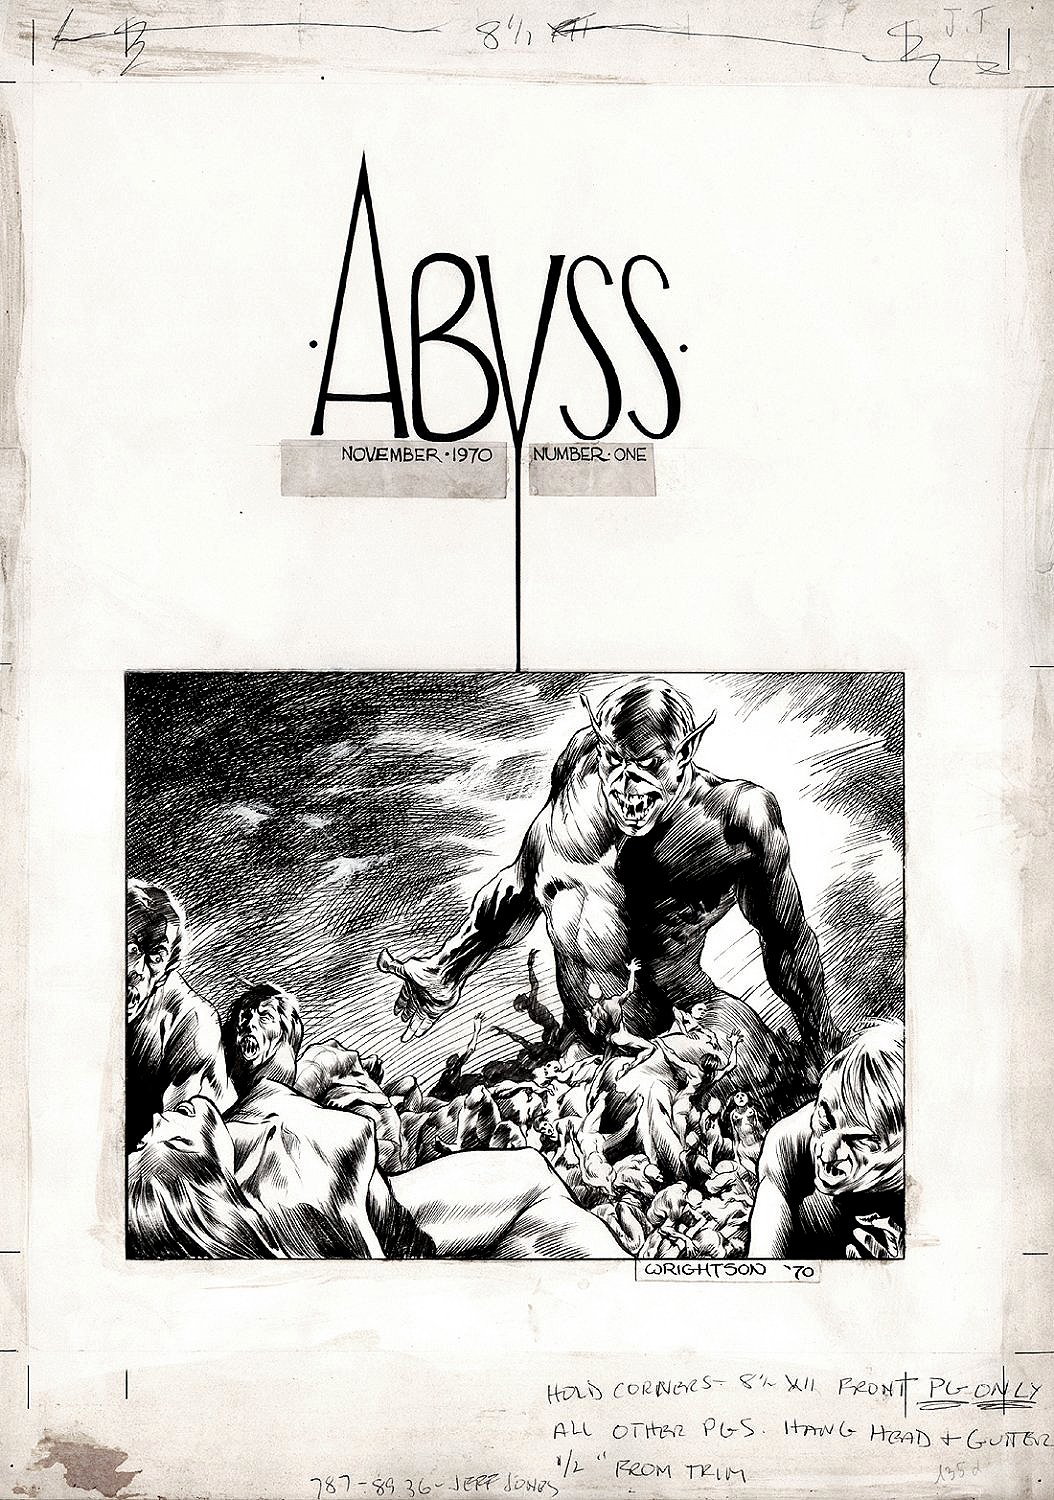 'The Abyss' Cover Art (AWESOME LARGE ART HORROR COVER!) 1970